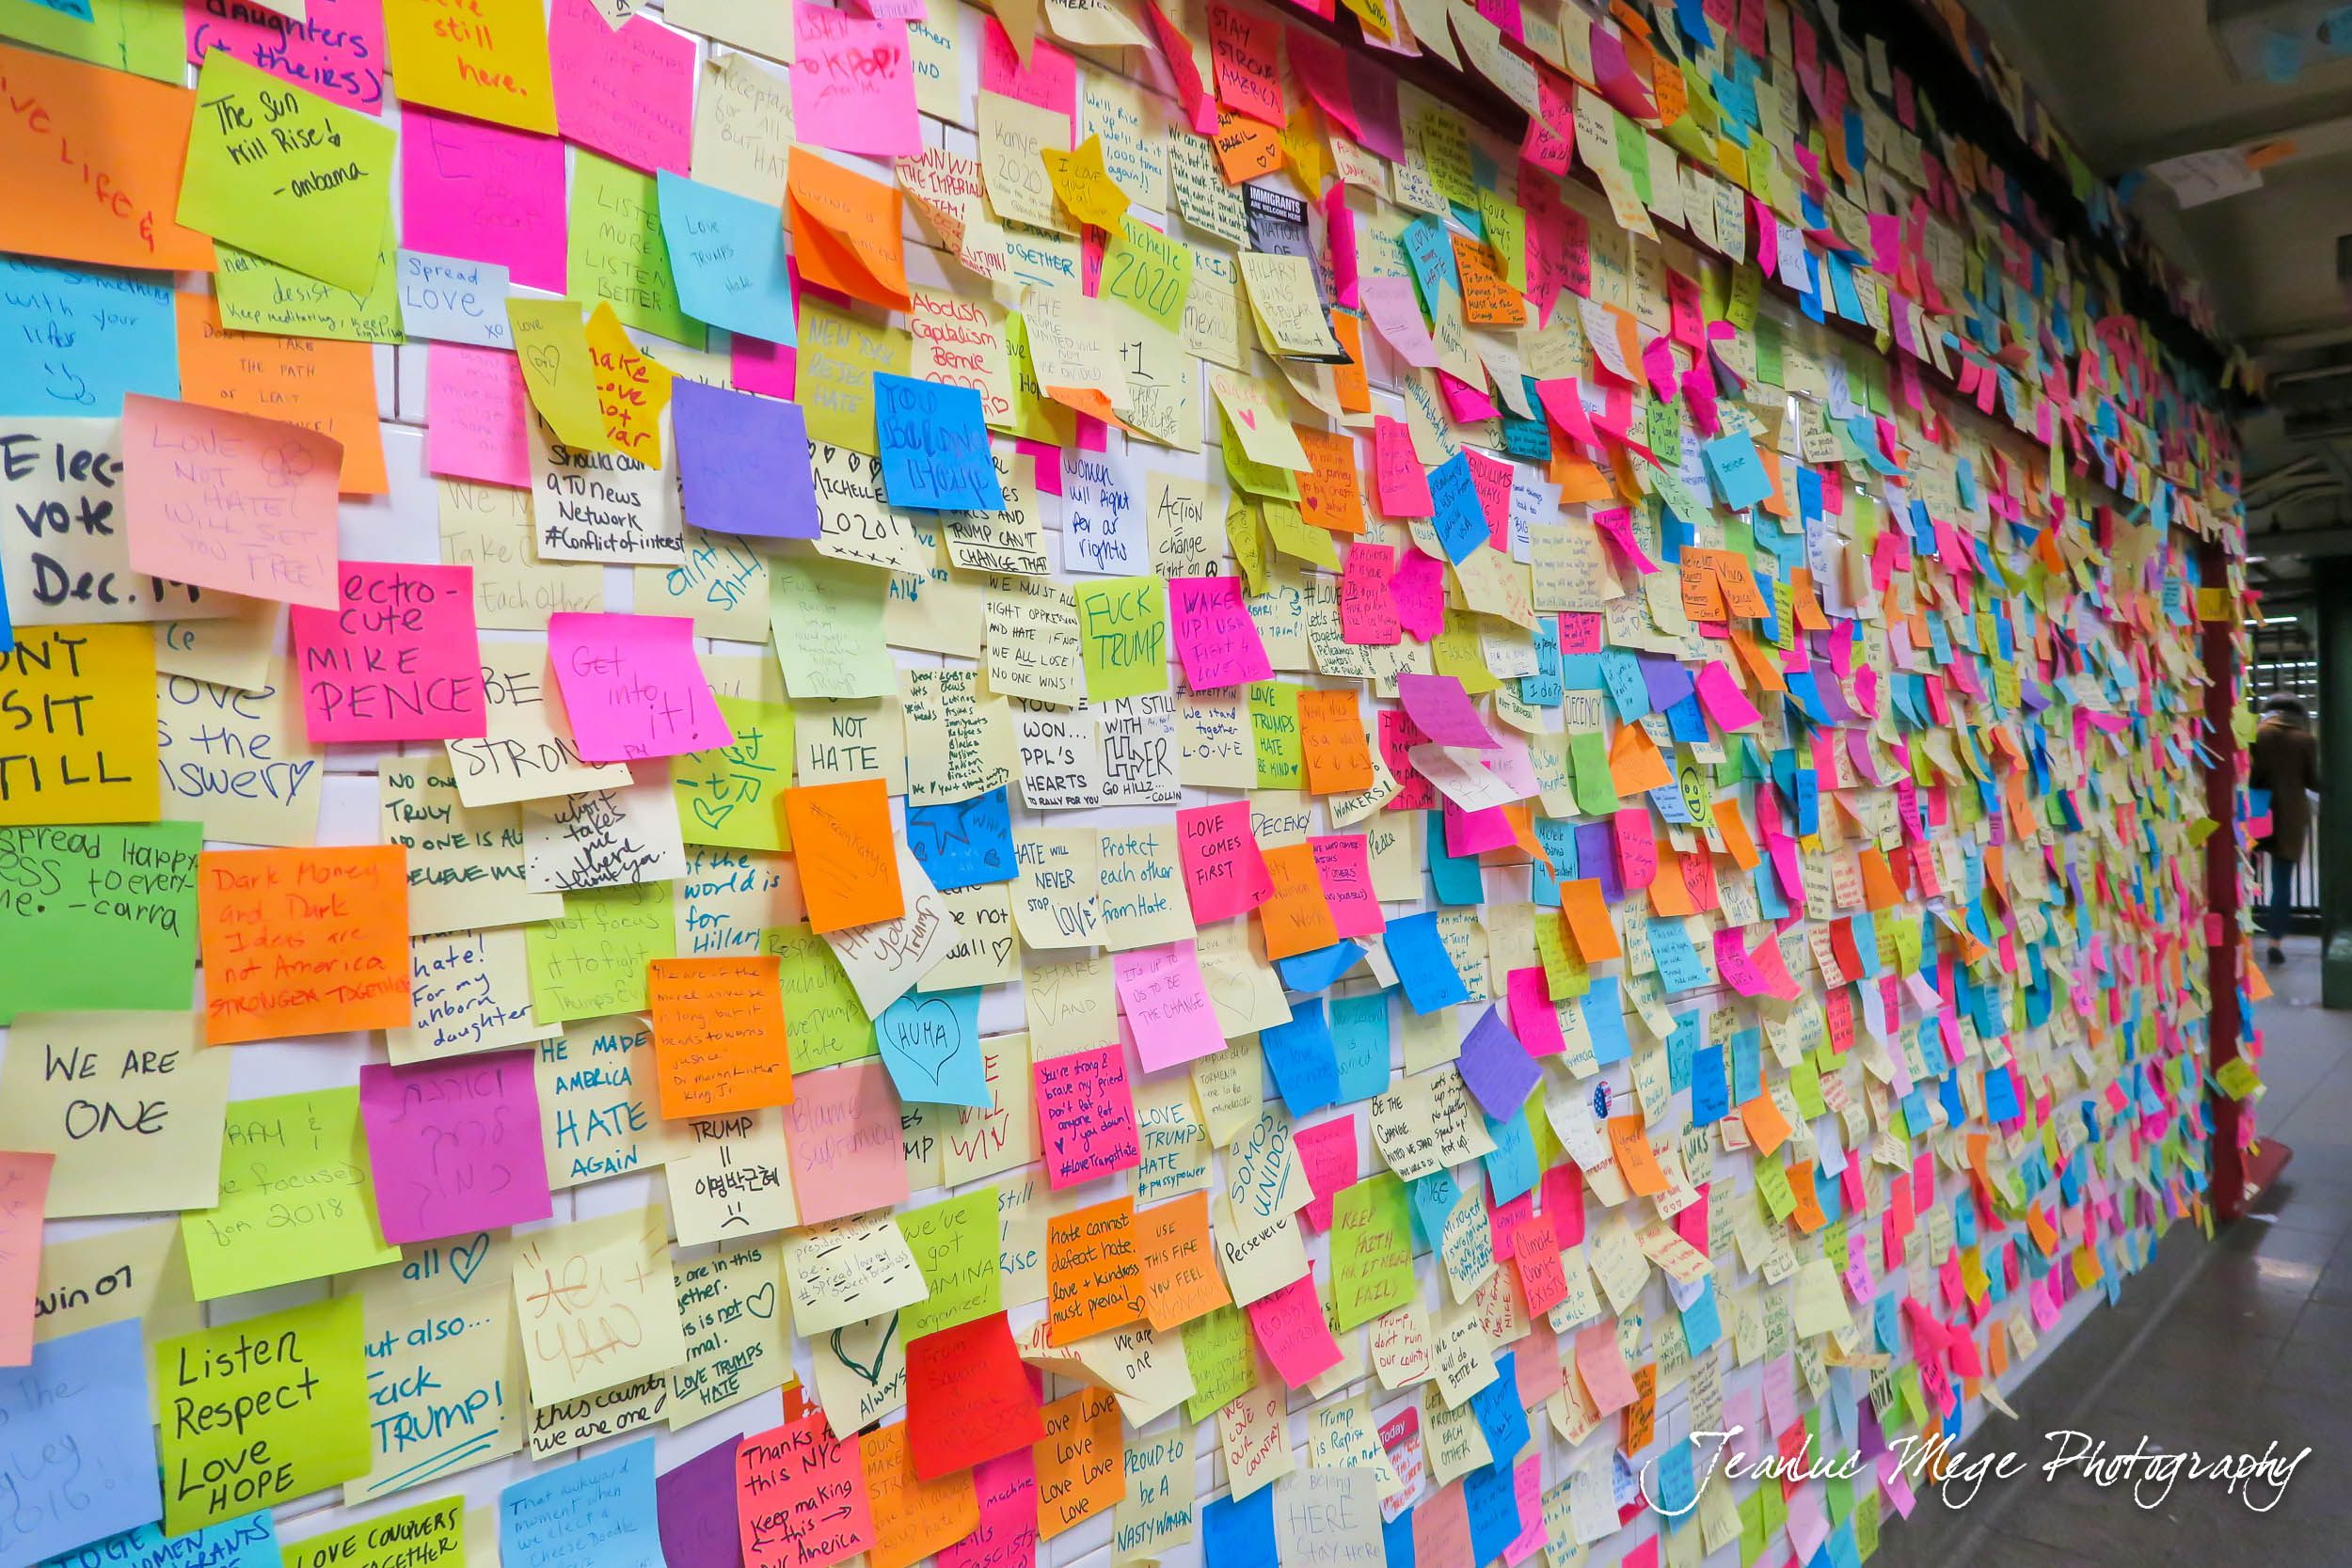 Love Wall Trump Union Square Nyc@jeanlucmege-0114.jpg